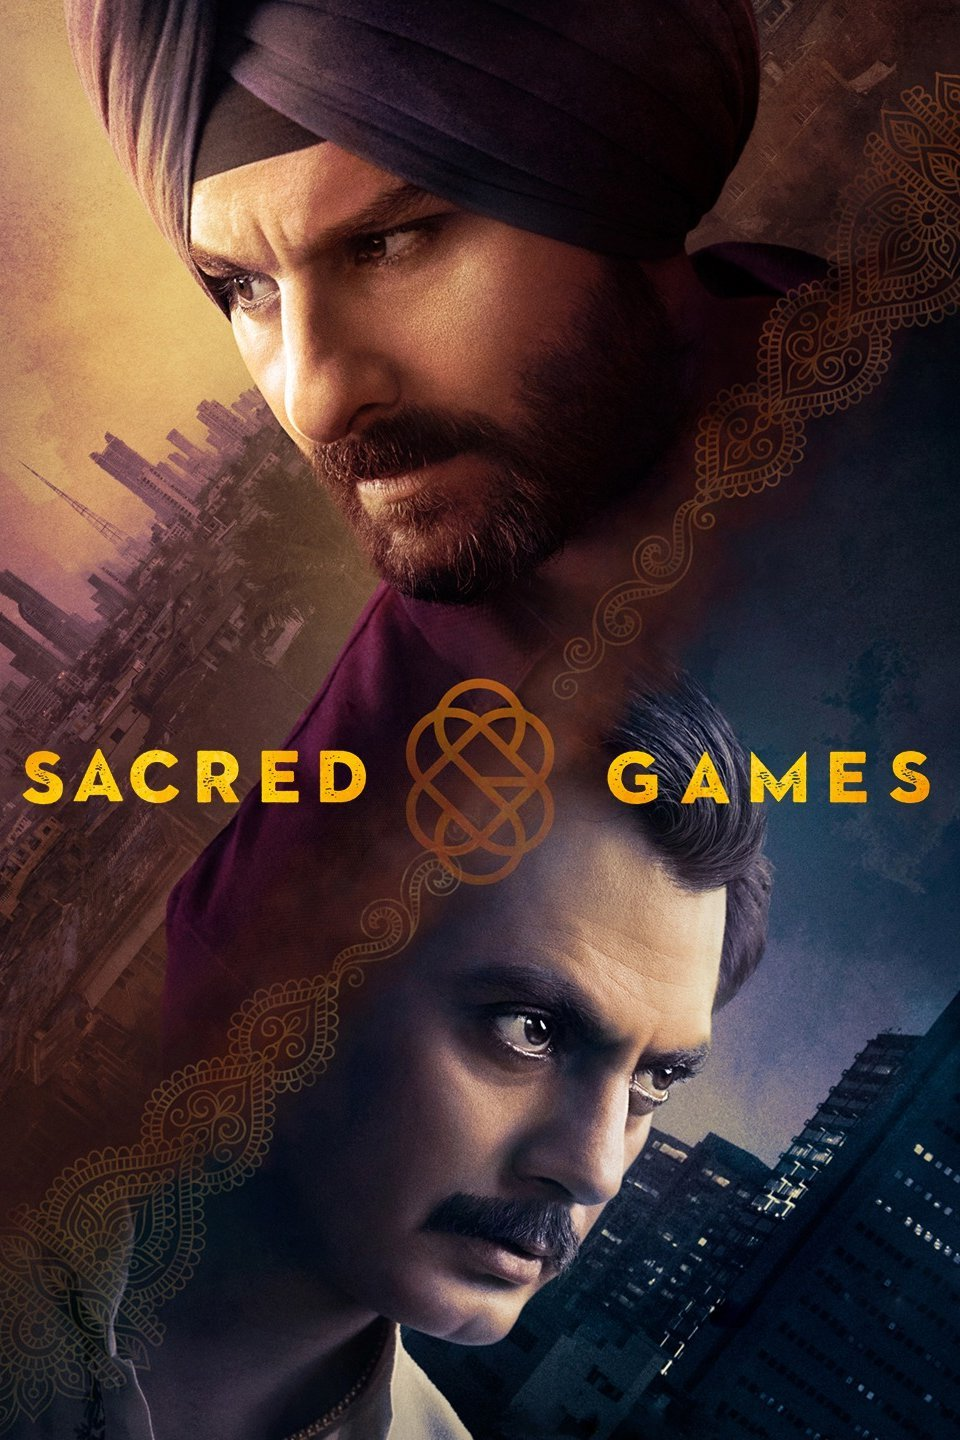 Sacred games season 1 episode 1 new indian hot web series - 2 7